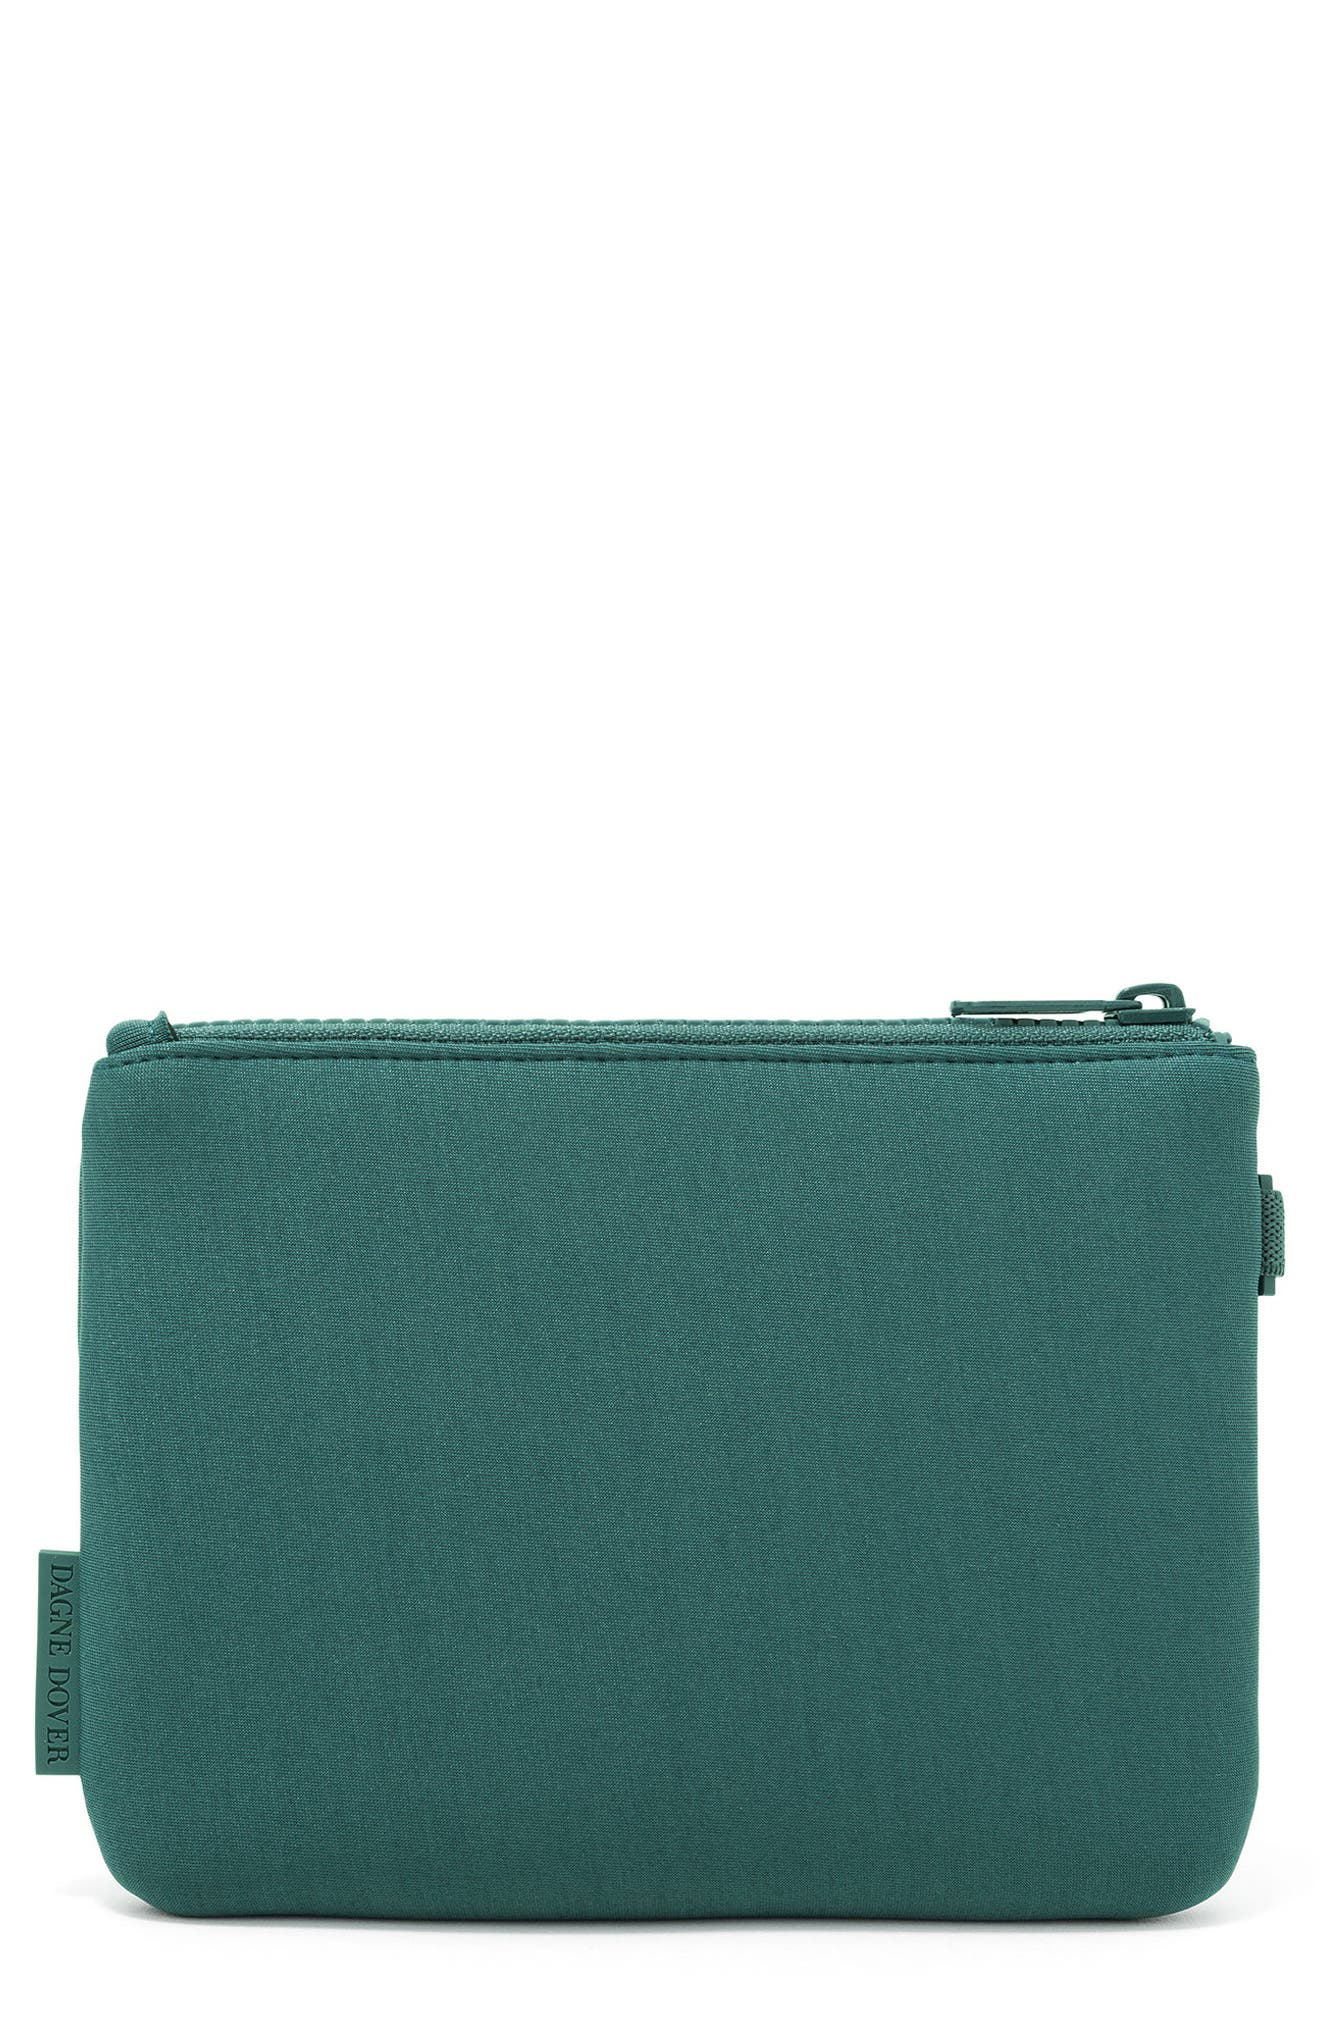 Scout Small Zip Top Pouch,                             Main thumbnail 1, color,                             Palm